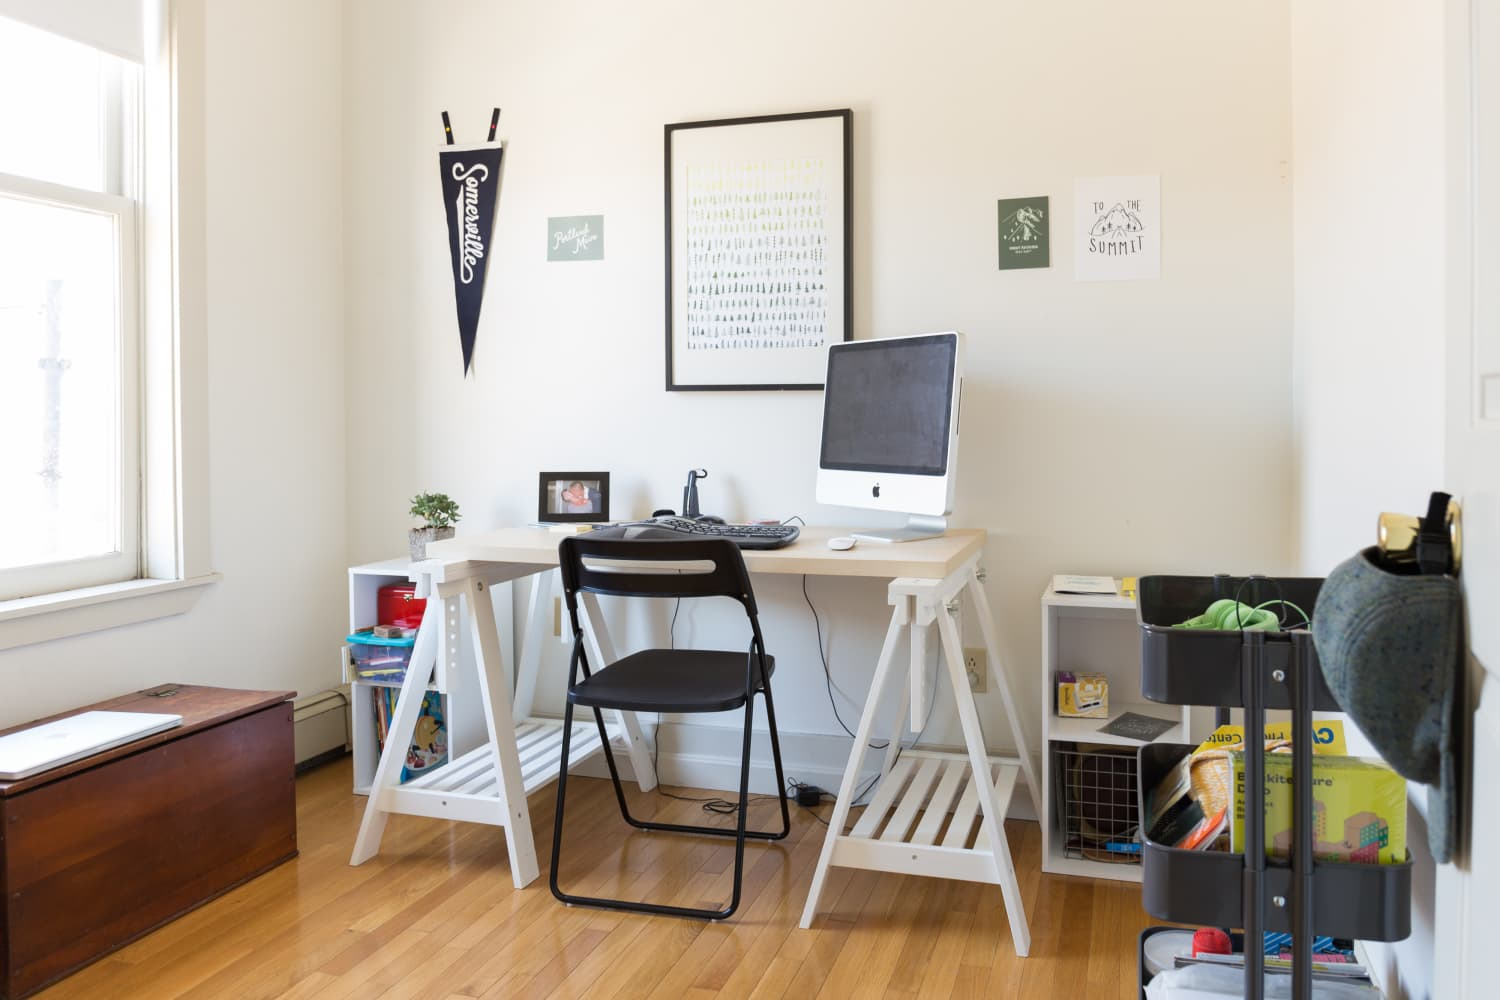 This Folding Chair is Perfect for Working From Home in a Tiny Space